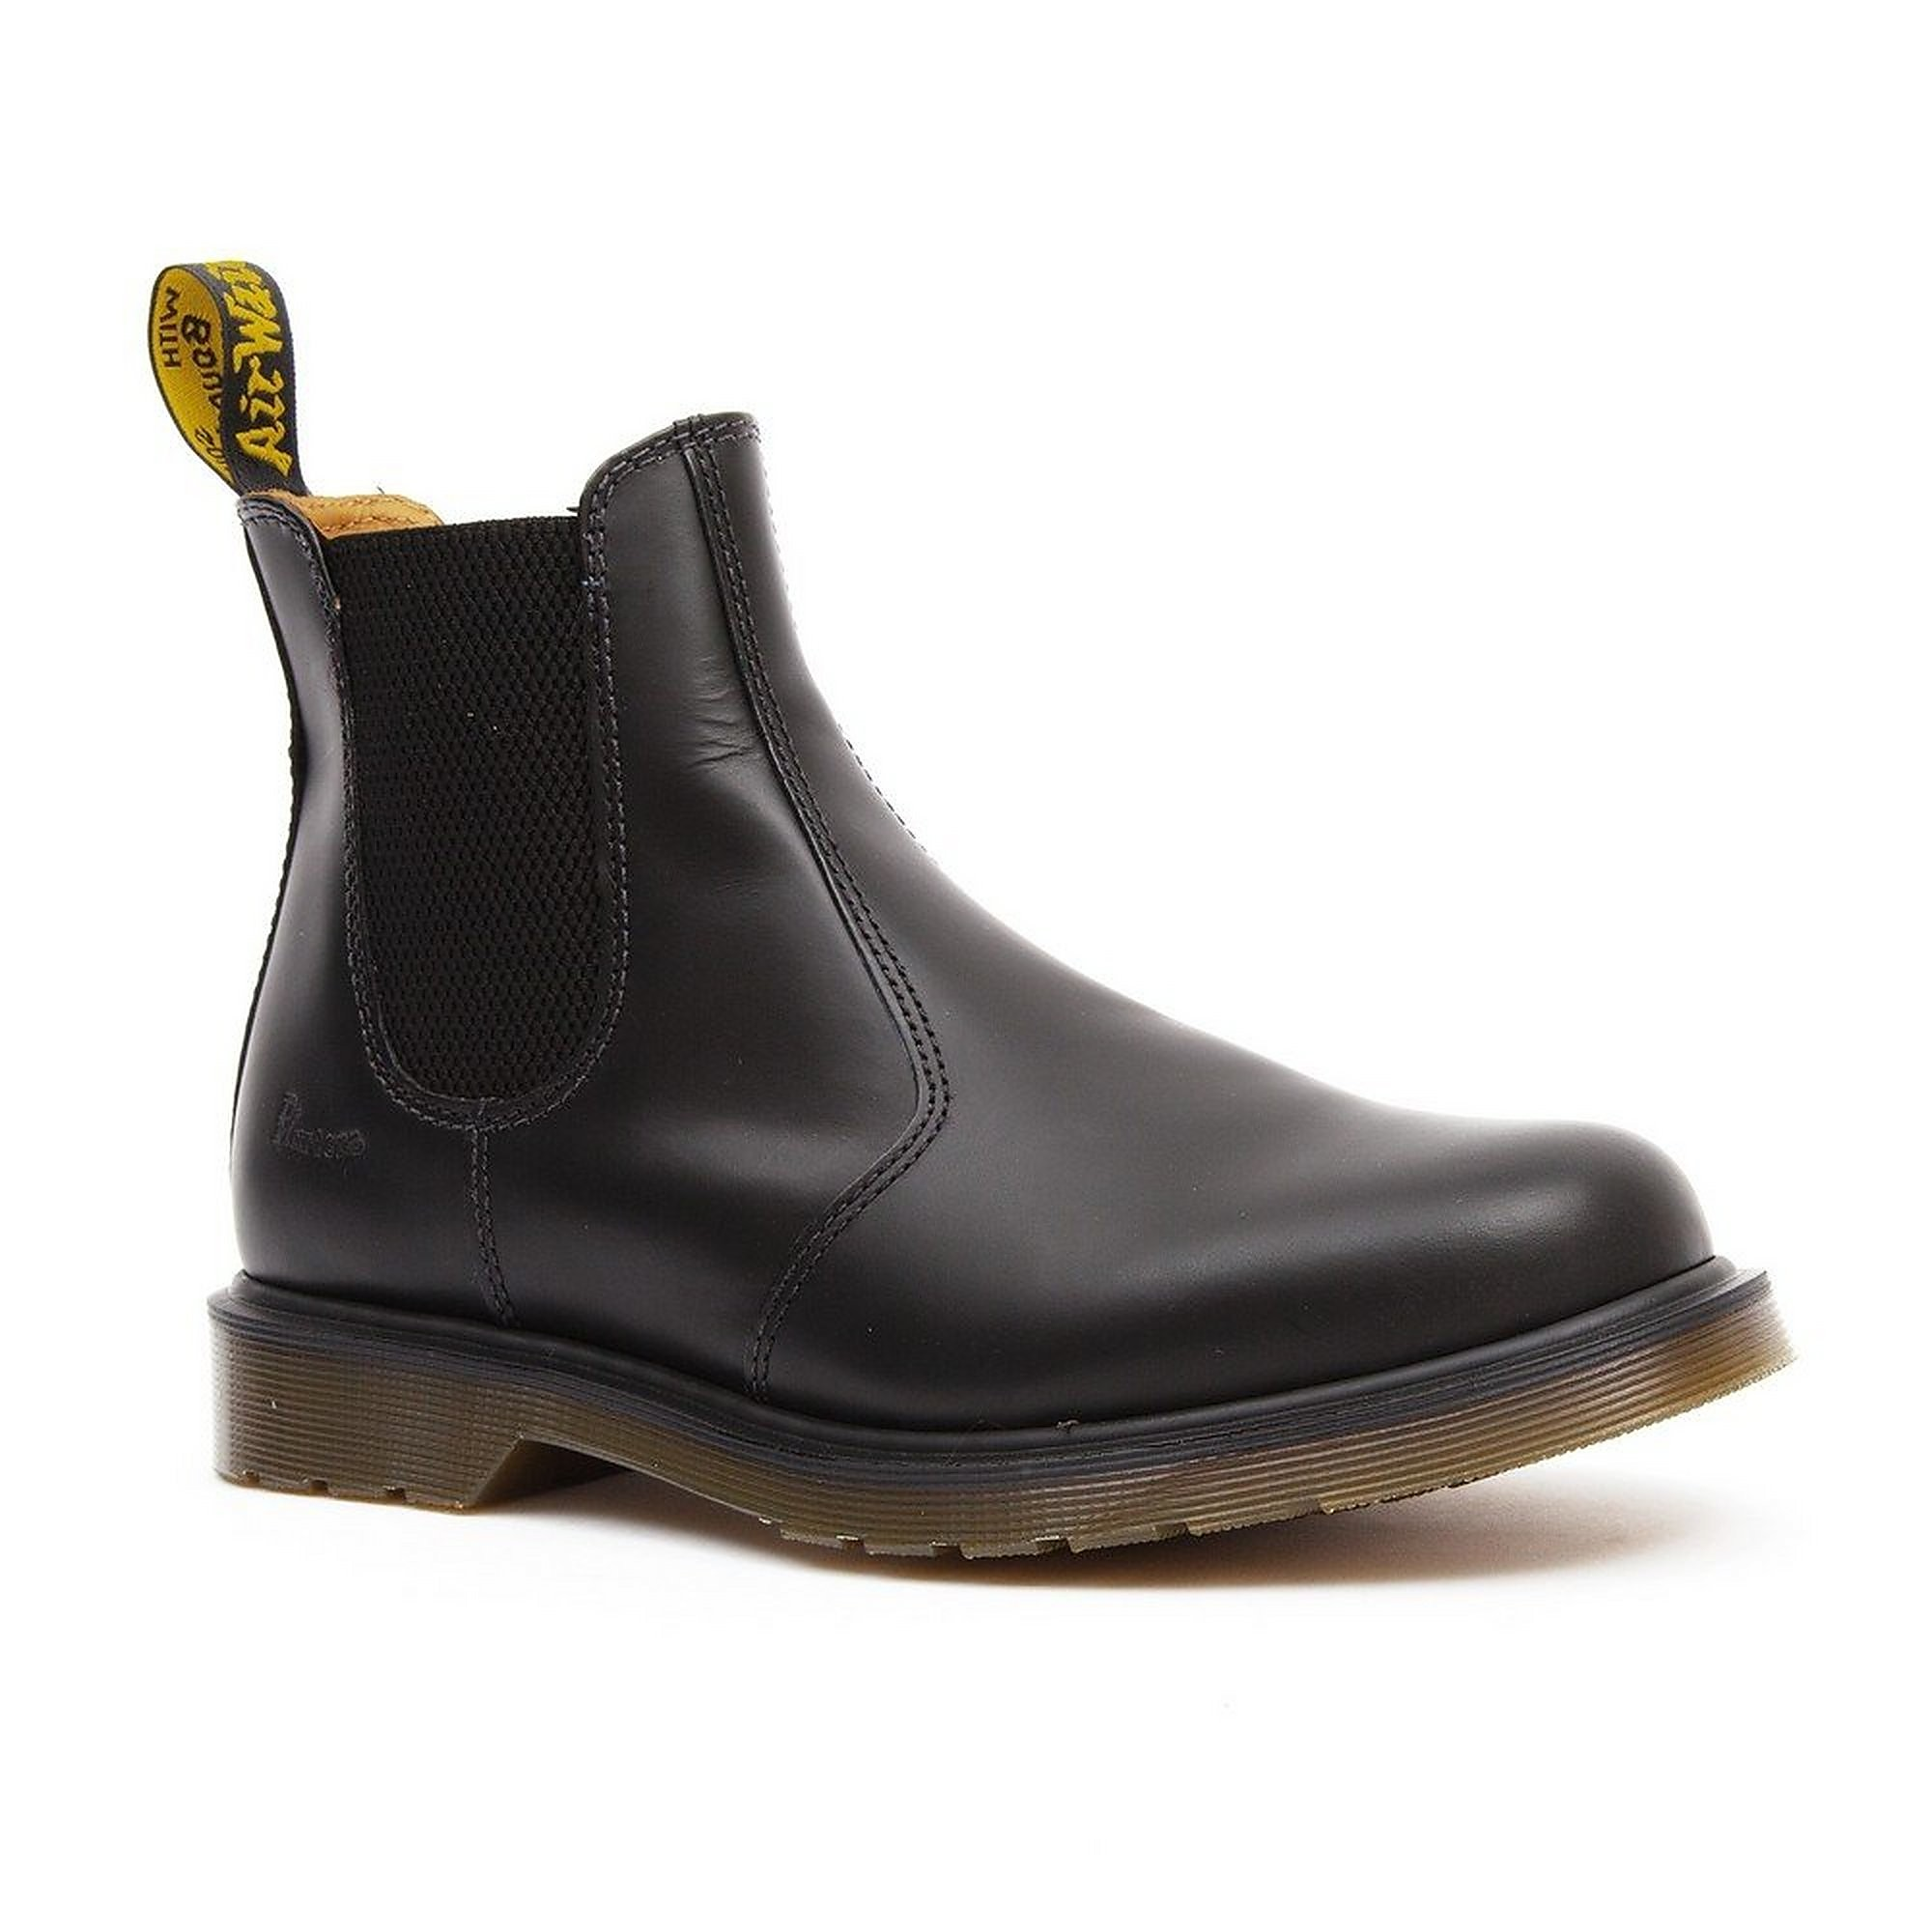 Dr Martens Men's 2976 Leather Chelsea Boots - Smooth Black